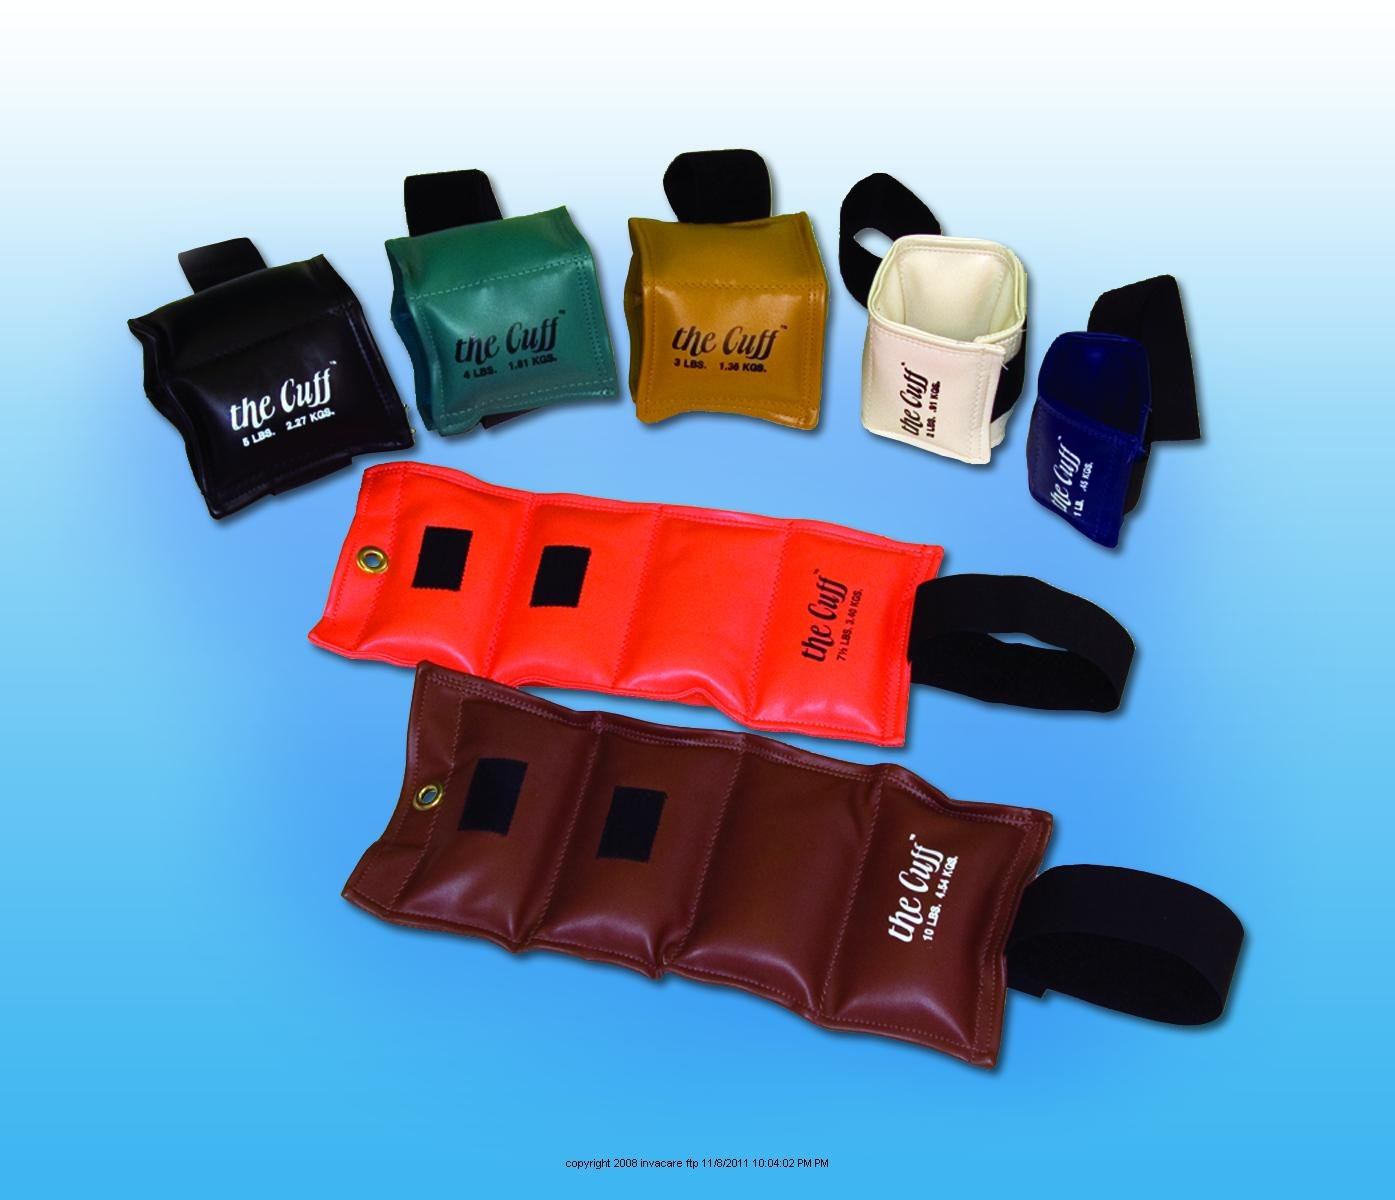 The Cuff Wrist/Ankle Weights, Wrist Ankle Weight 2Lb, (1 EACH, 1 EACH) FABRICATION ENTERPRISES